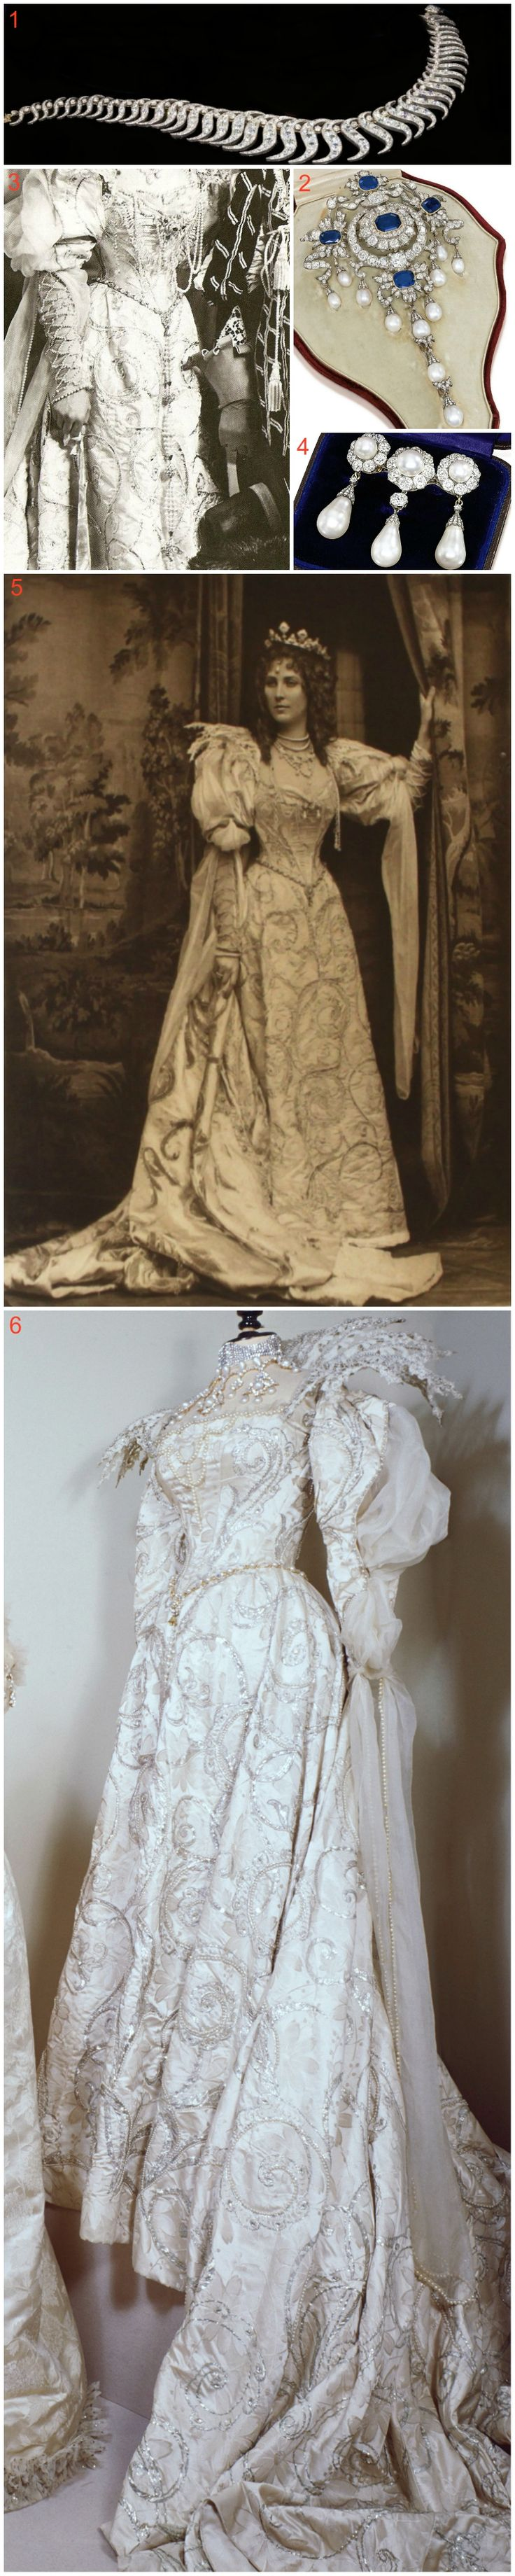 """Winifred, Duchess of Portland, went to the 1897 Devonshire House Ball as the """"Duchess of Savoia."""" Her outfit consisted of an embroidered silver satin dress and lace ruff (6). A portrait (5) shows her wearing a diamond and pearl brooch (4) as part of her costume. She wore slightly different jewellery for the event itself—a close-up from her photo with her husband, the 6th Duke of Portland (3), shows the Portland stomacher (2) and a scroll necklace (1) pinned on her bodice as corsage…"""